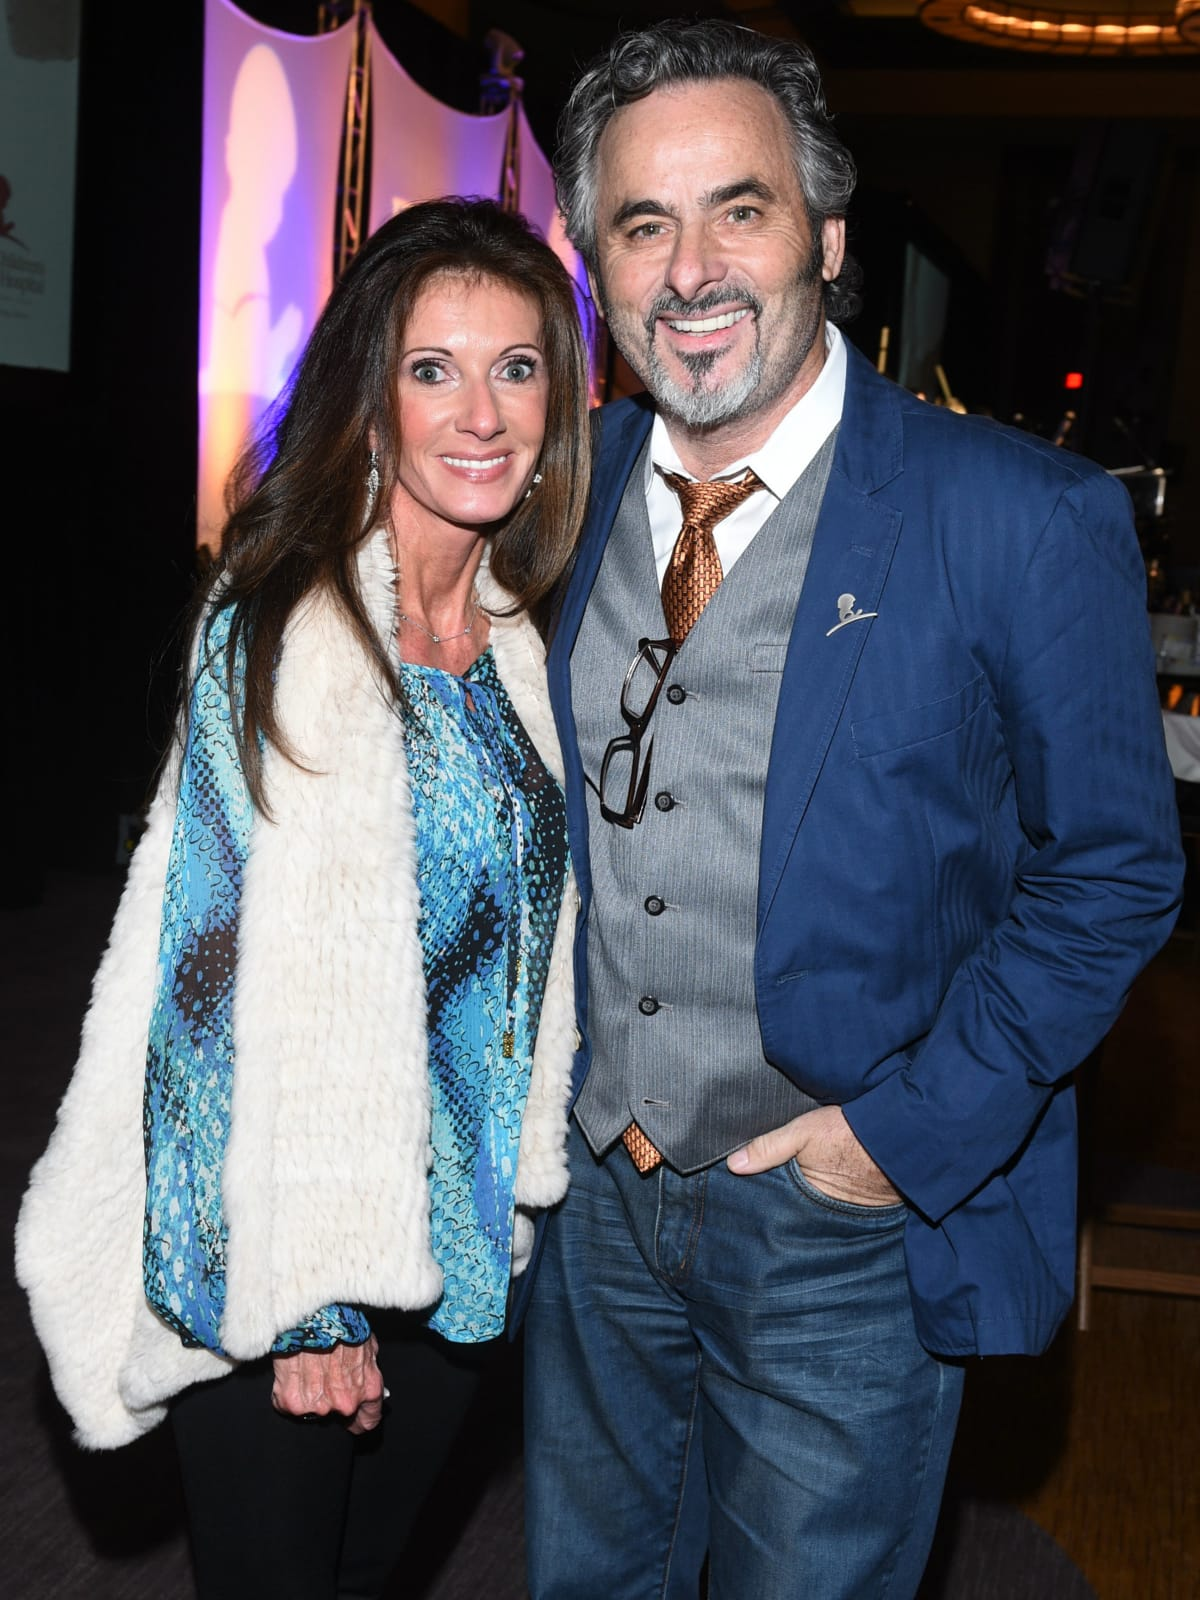 David & Anita Feherty